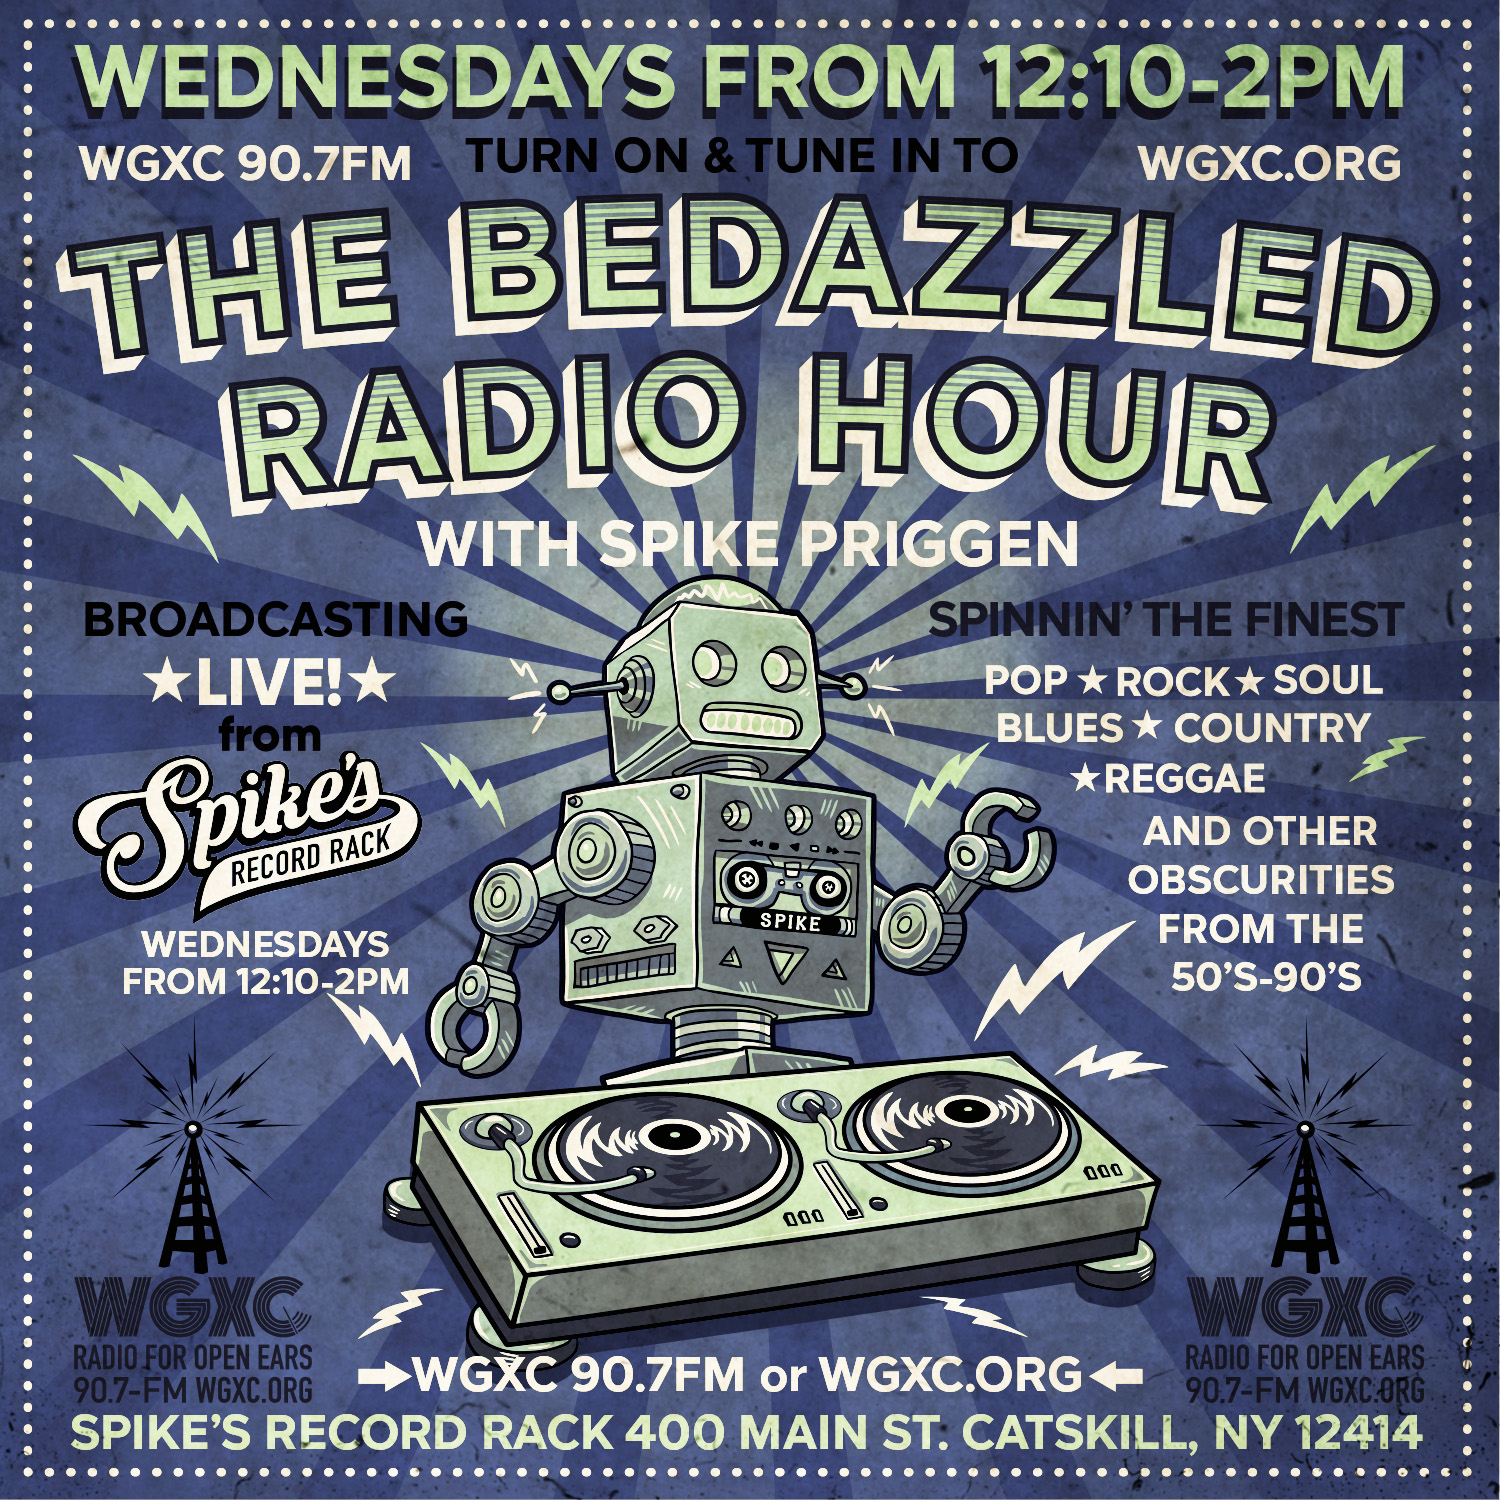 The Bedazzled Radio Hour Live Show Image